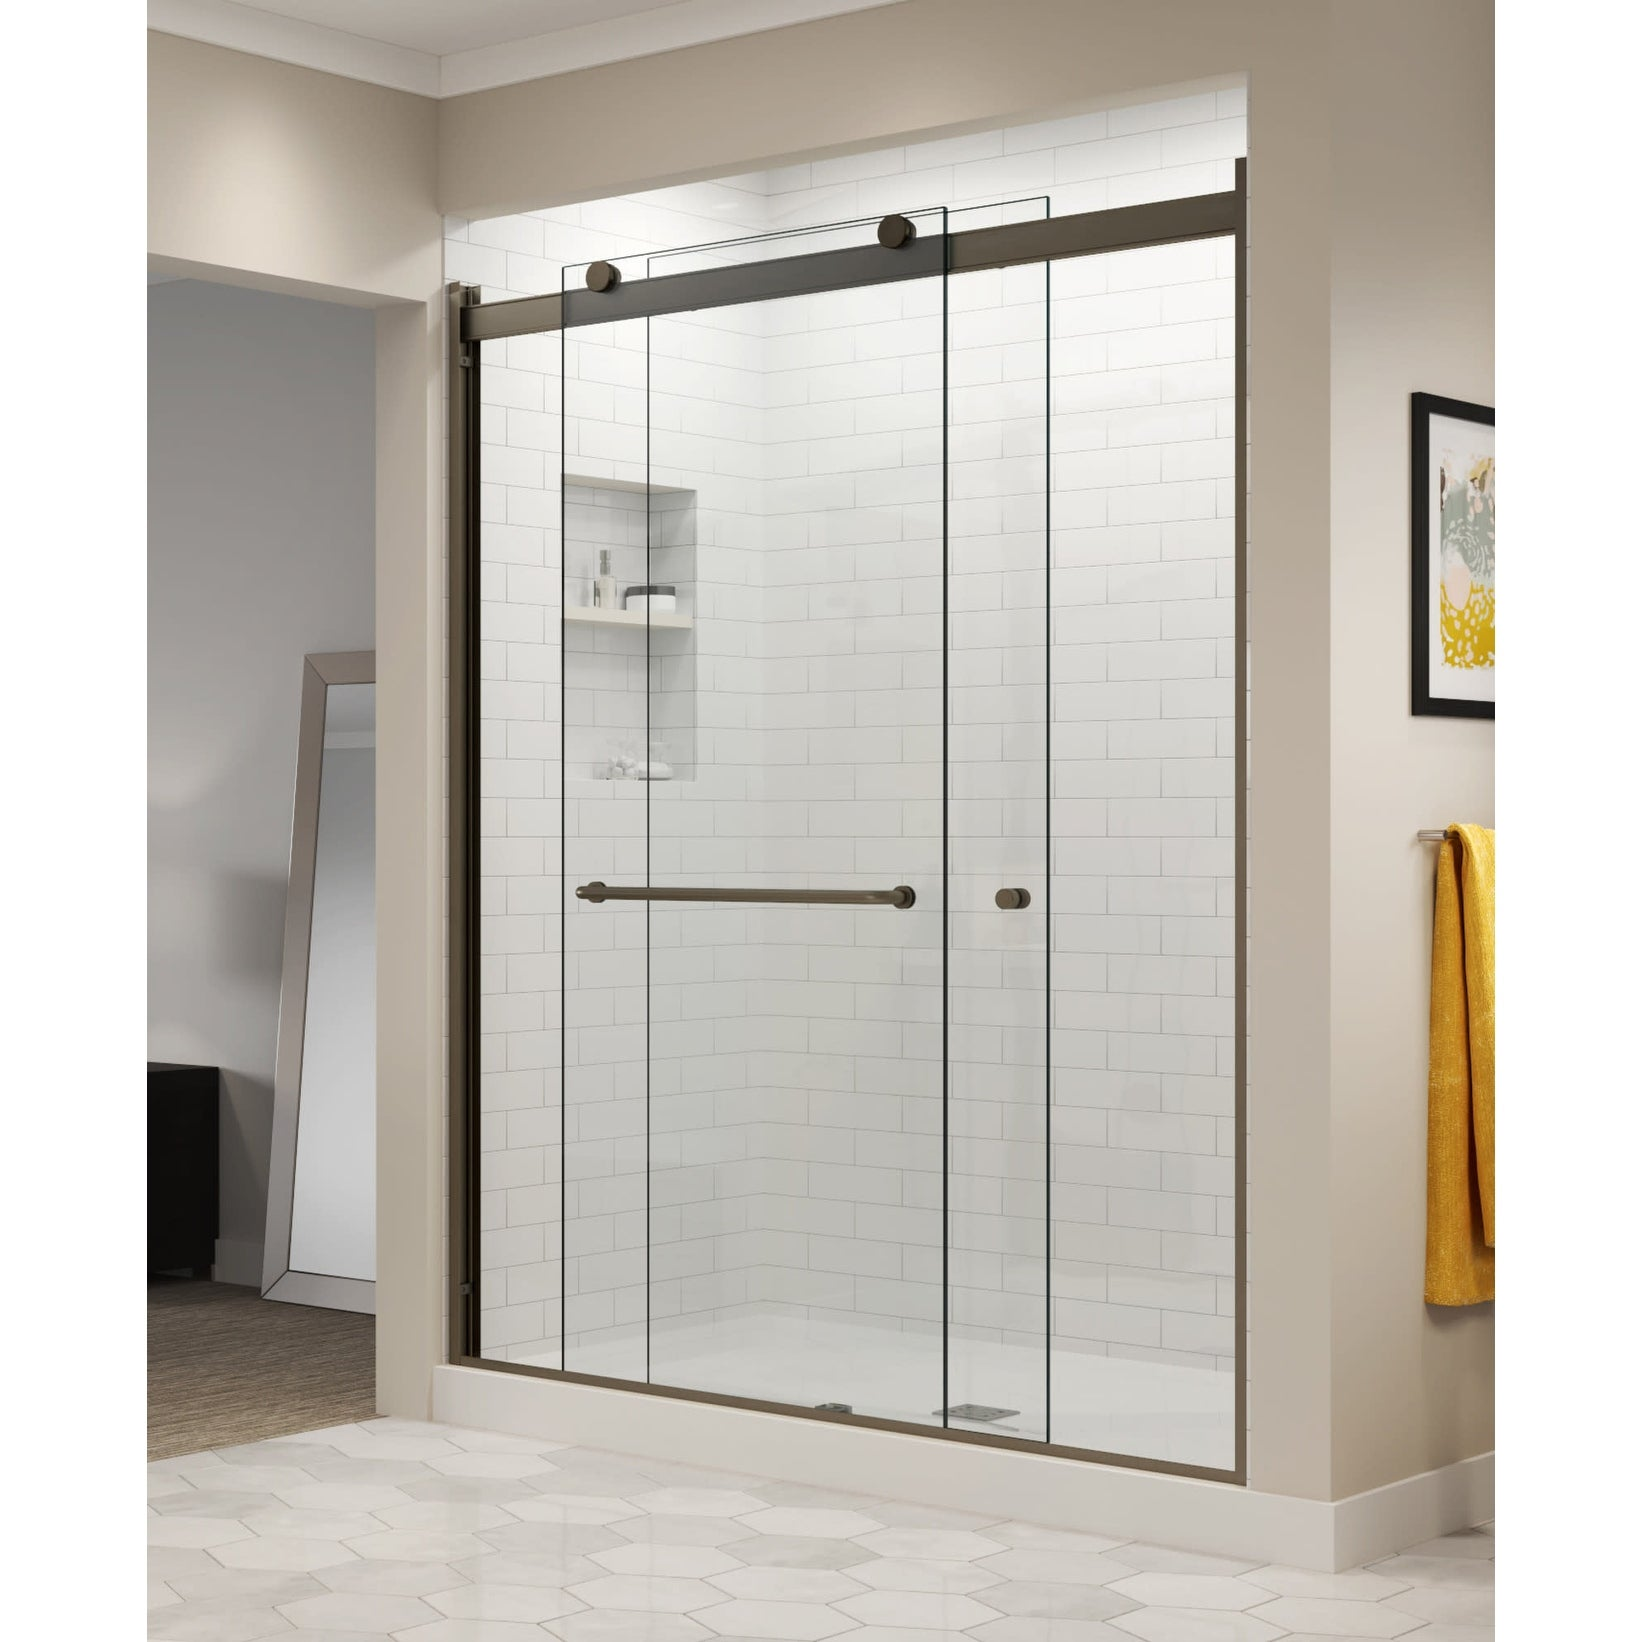 Basco Rtla05b6070xp Rotolo 70 High X 60 Wide Sliding Frameless Shower Door With Autoglidexp Clear Glass